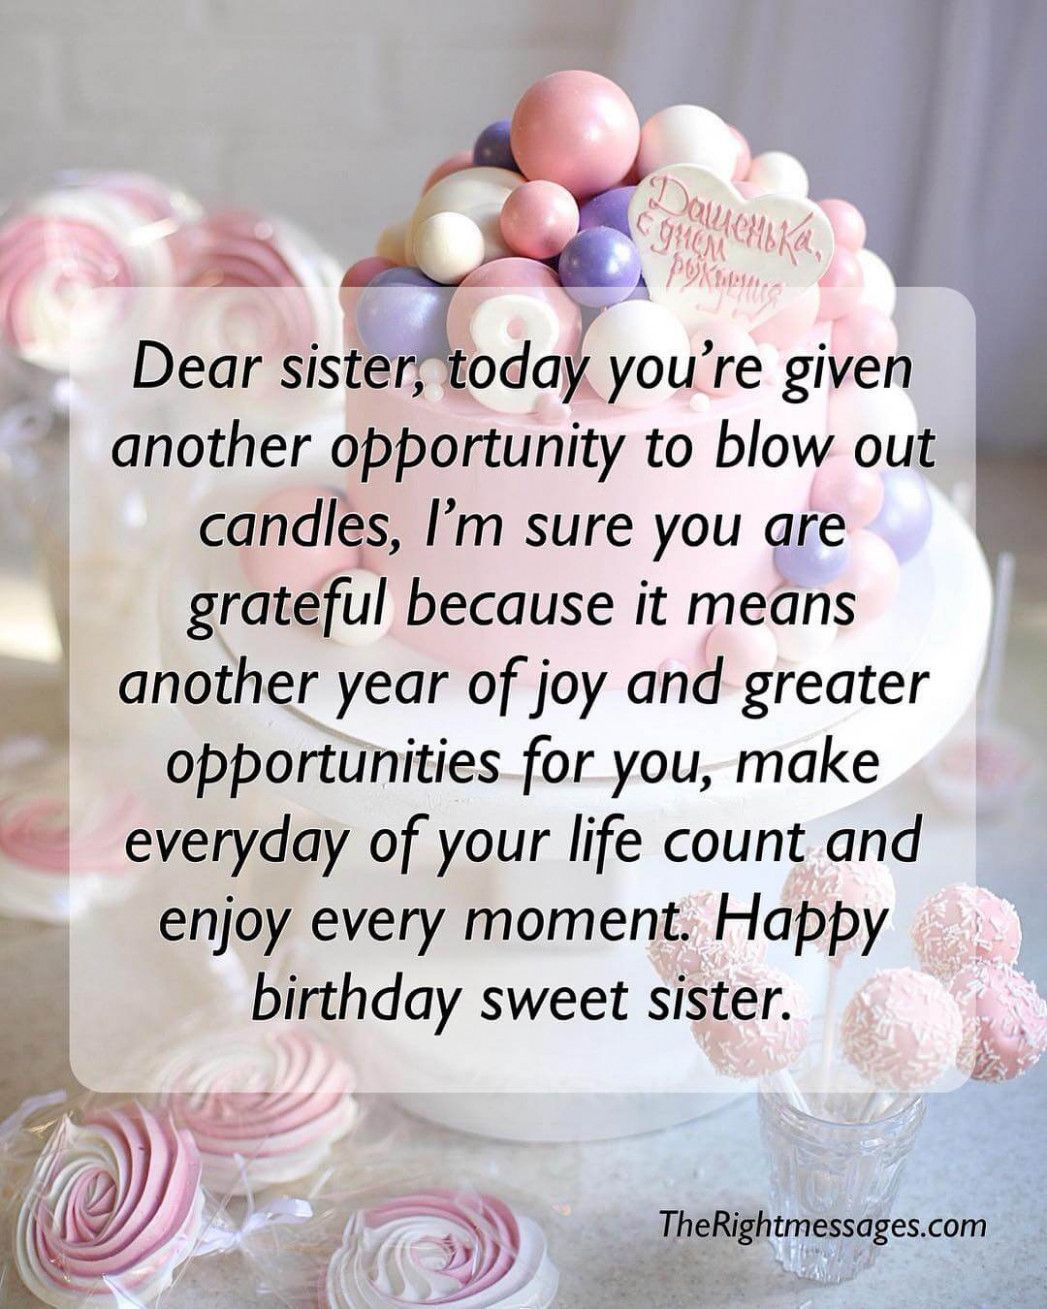 10 Top Birthday Wishes For My Little Sister Birthday Greetings For Sister Birthday Messages For Sister Happy Birthday Sister Quotes